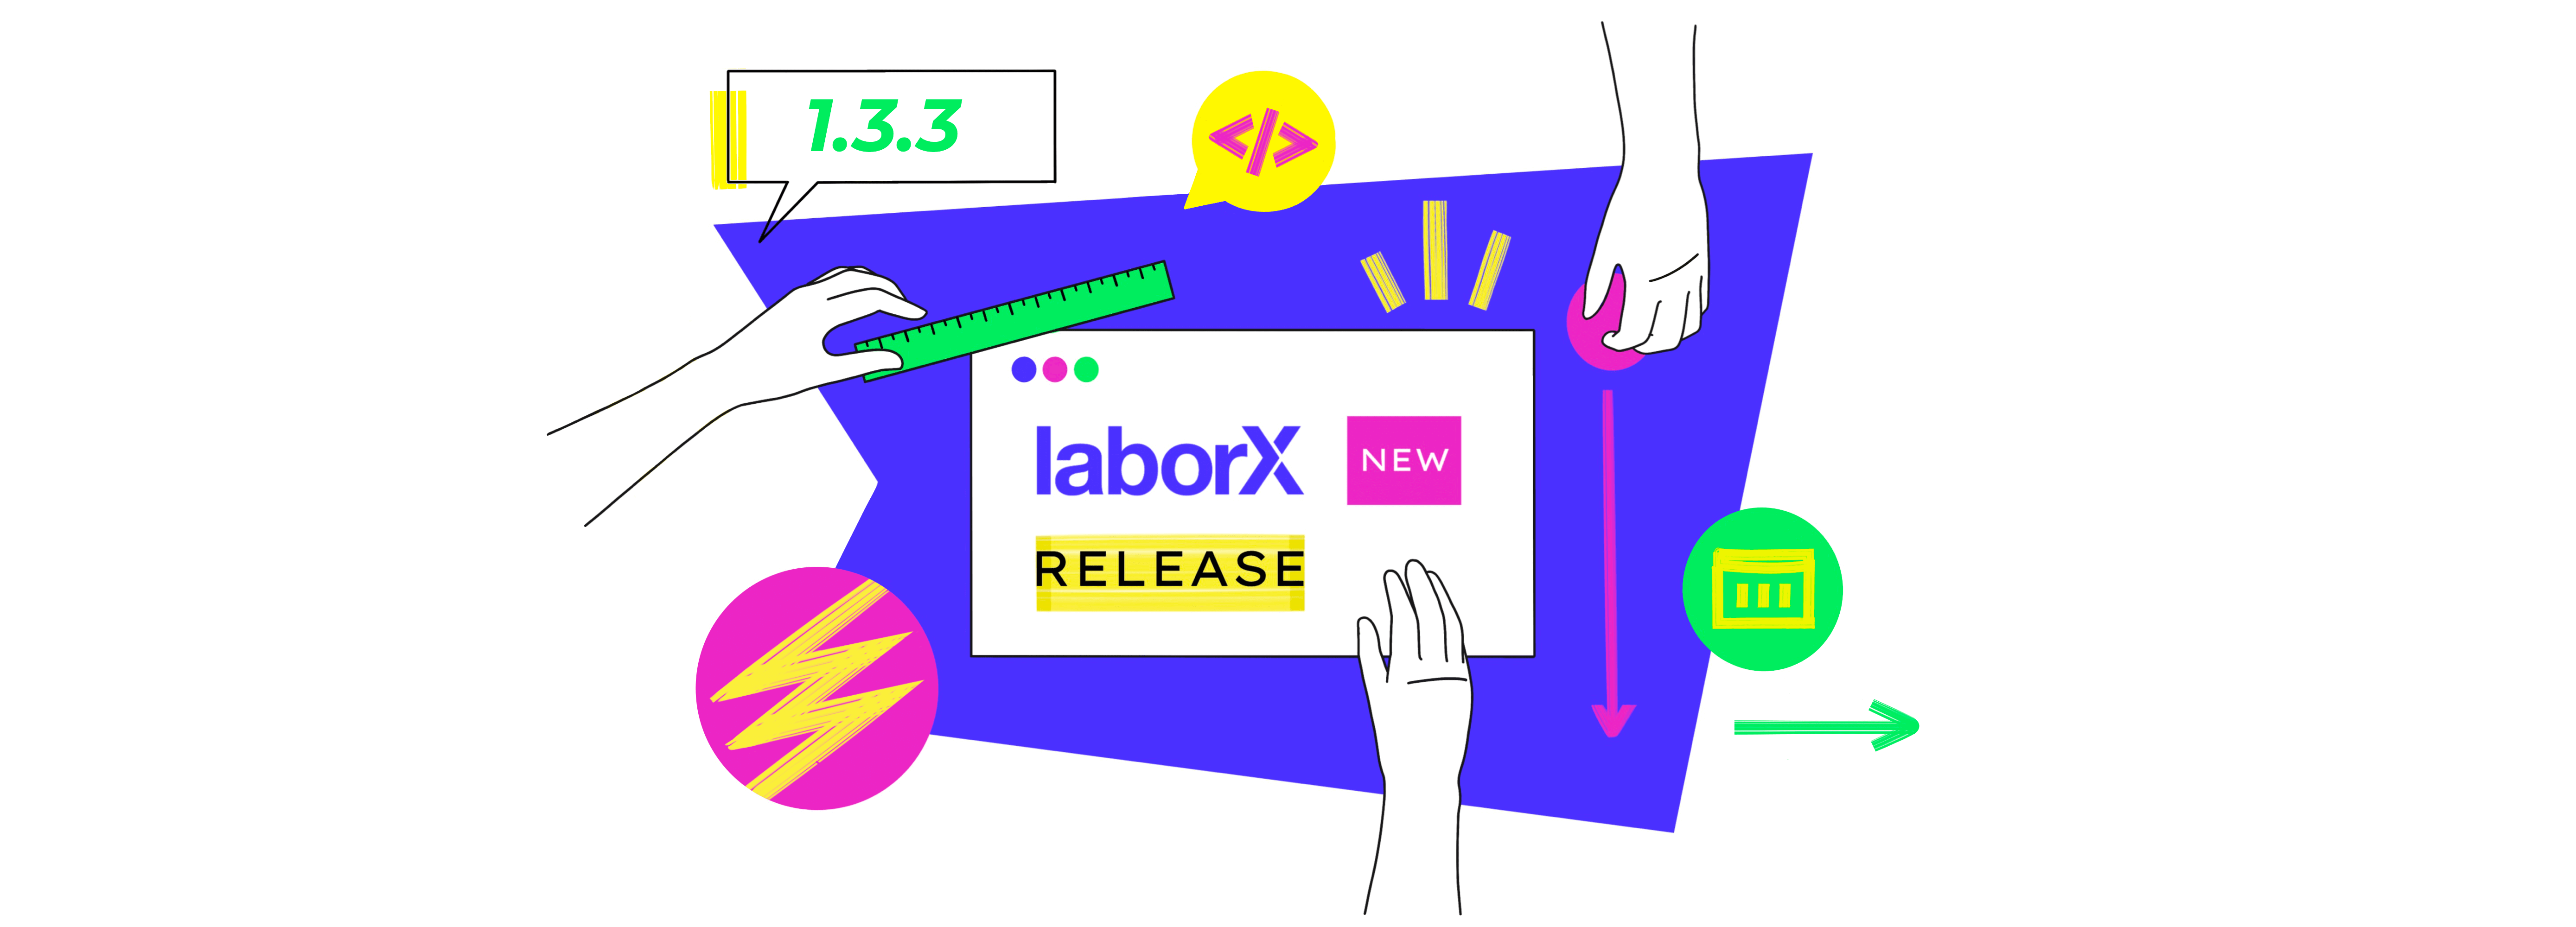 What's new in LaborX release 1.3.3?